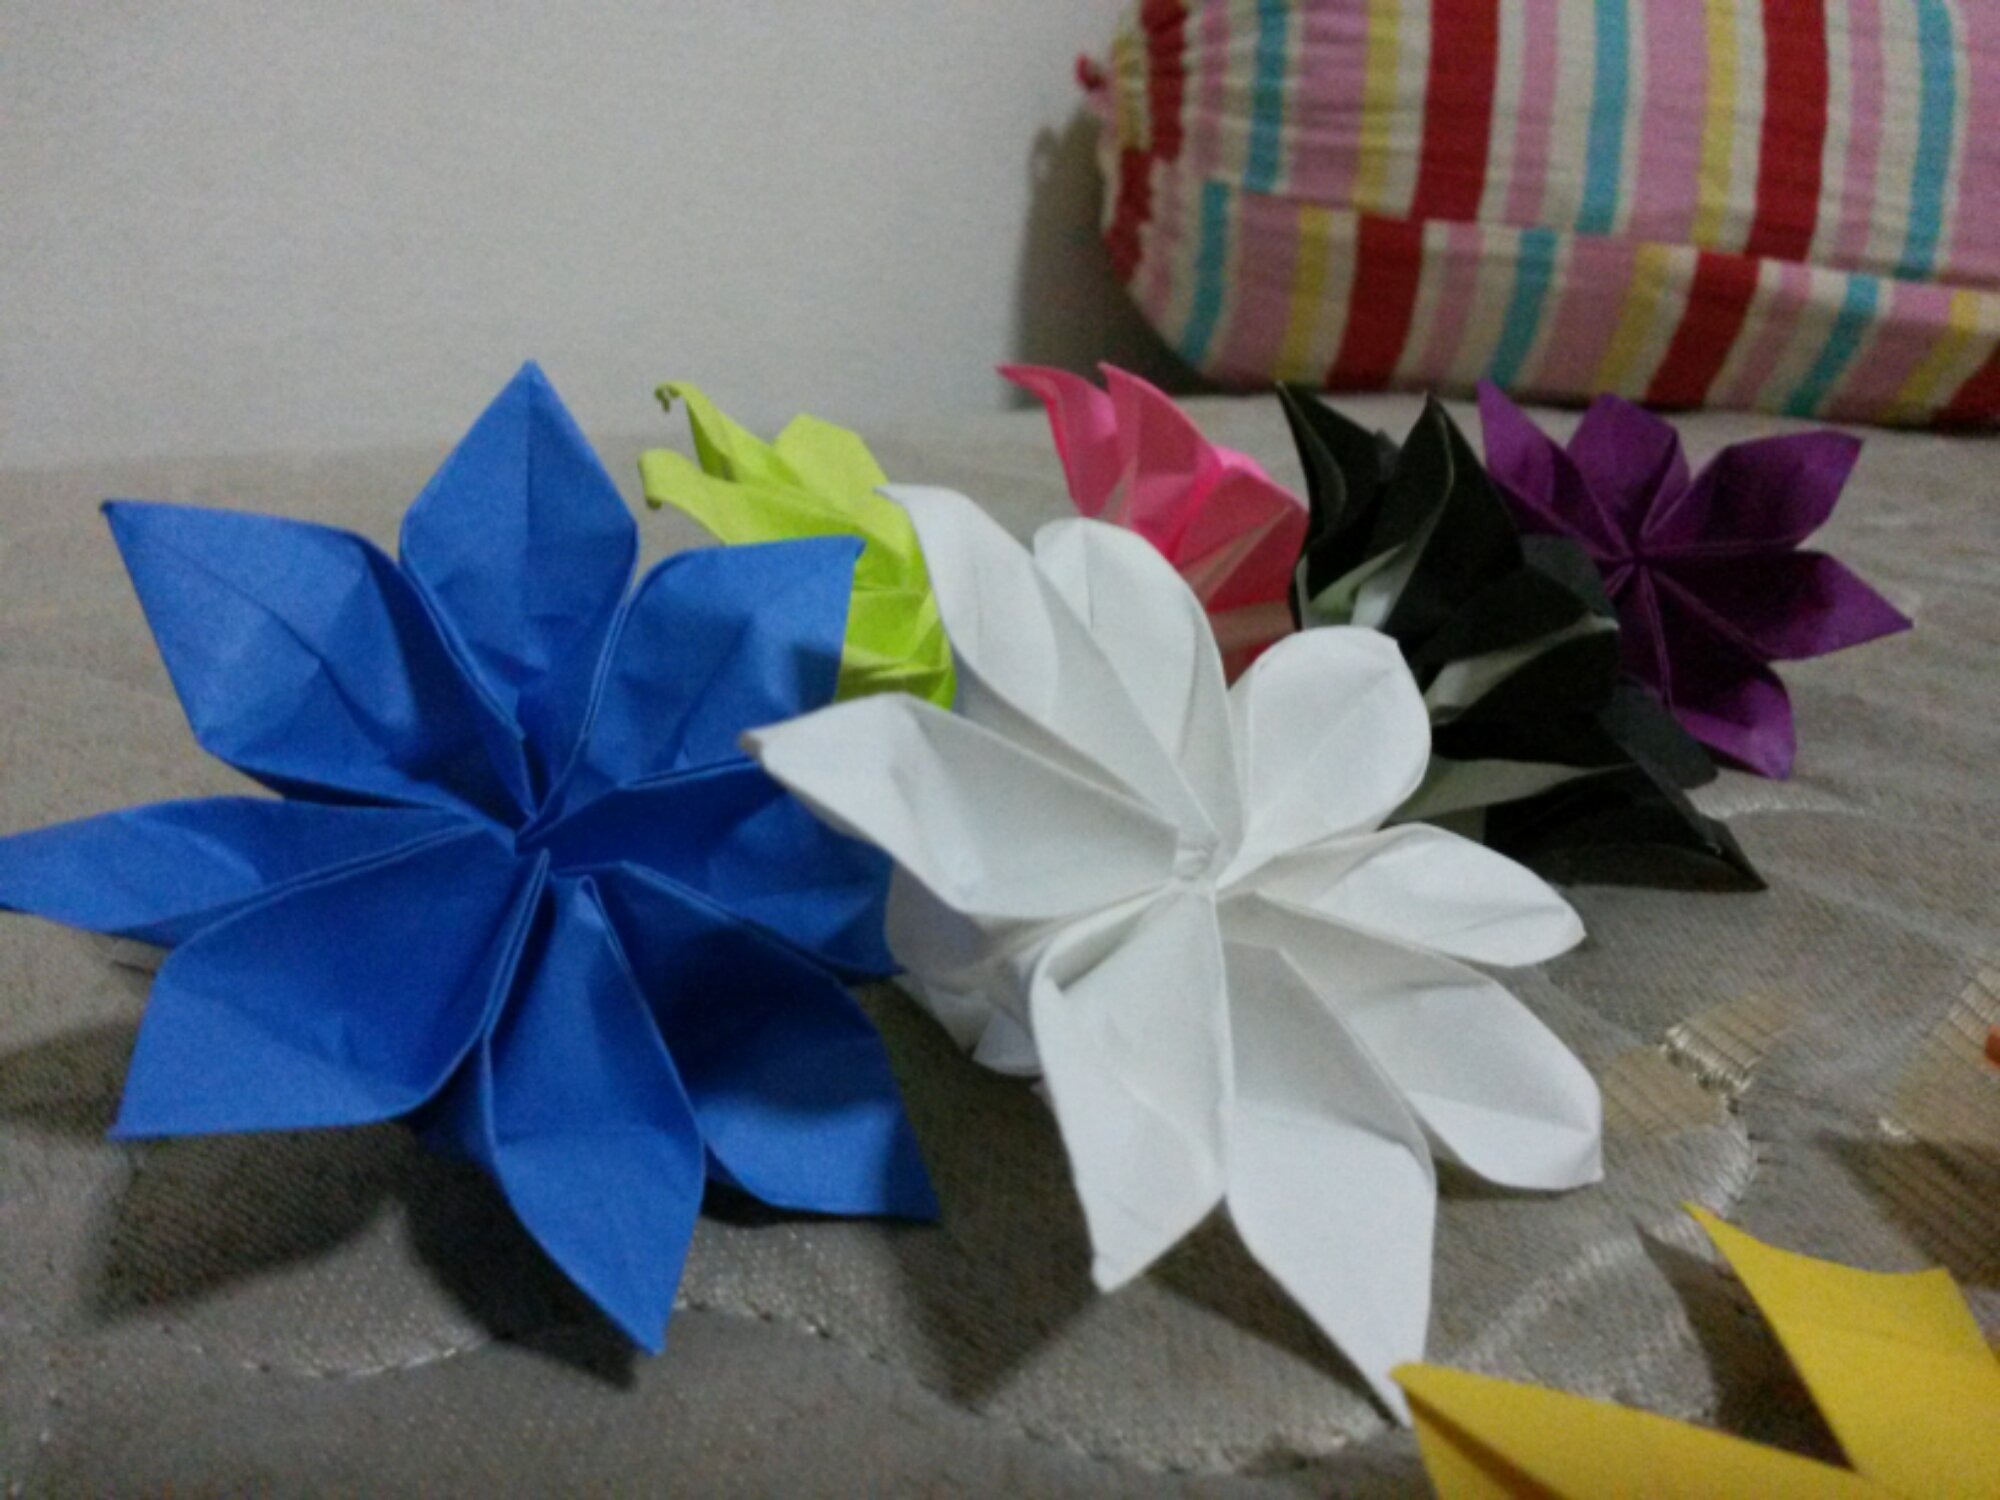 , Back to practising origami!, Singapore Balloon Decoration Services - Balloon Workshop and Balloon Sculpting